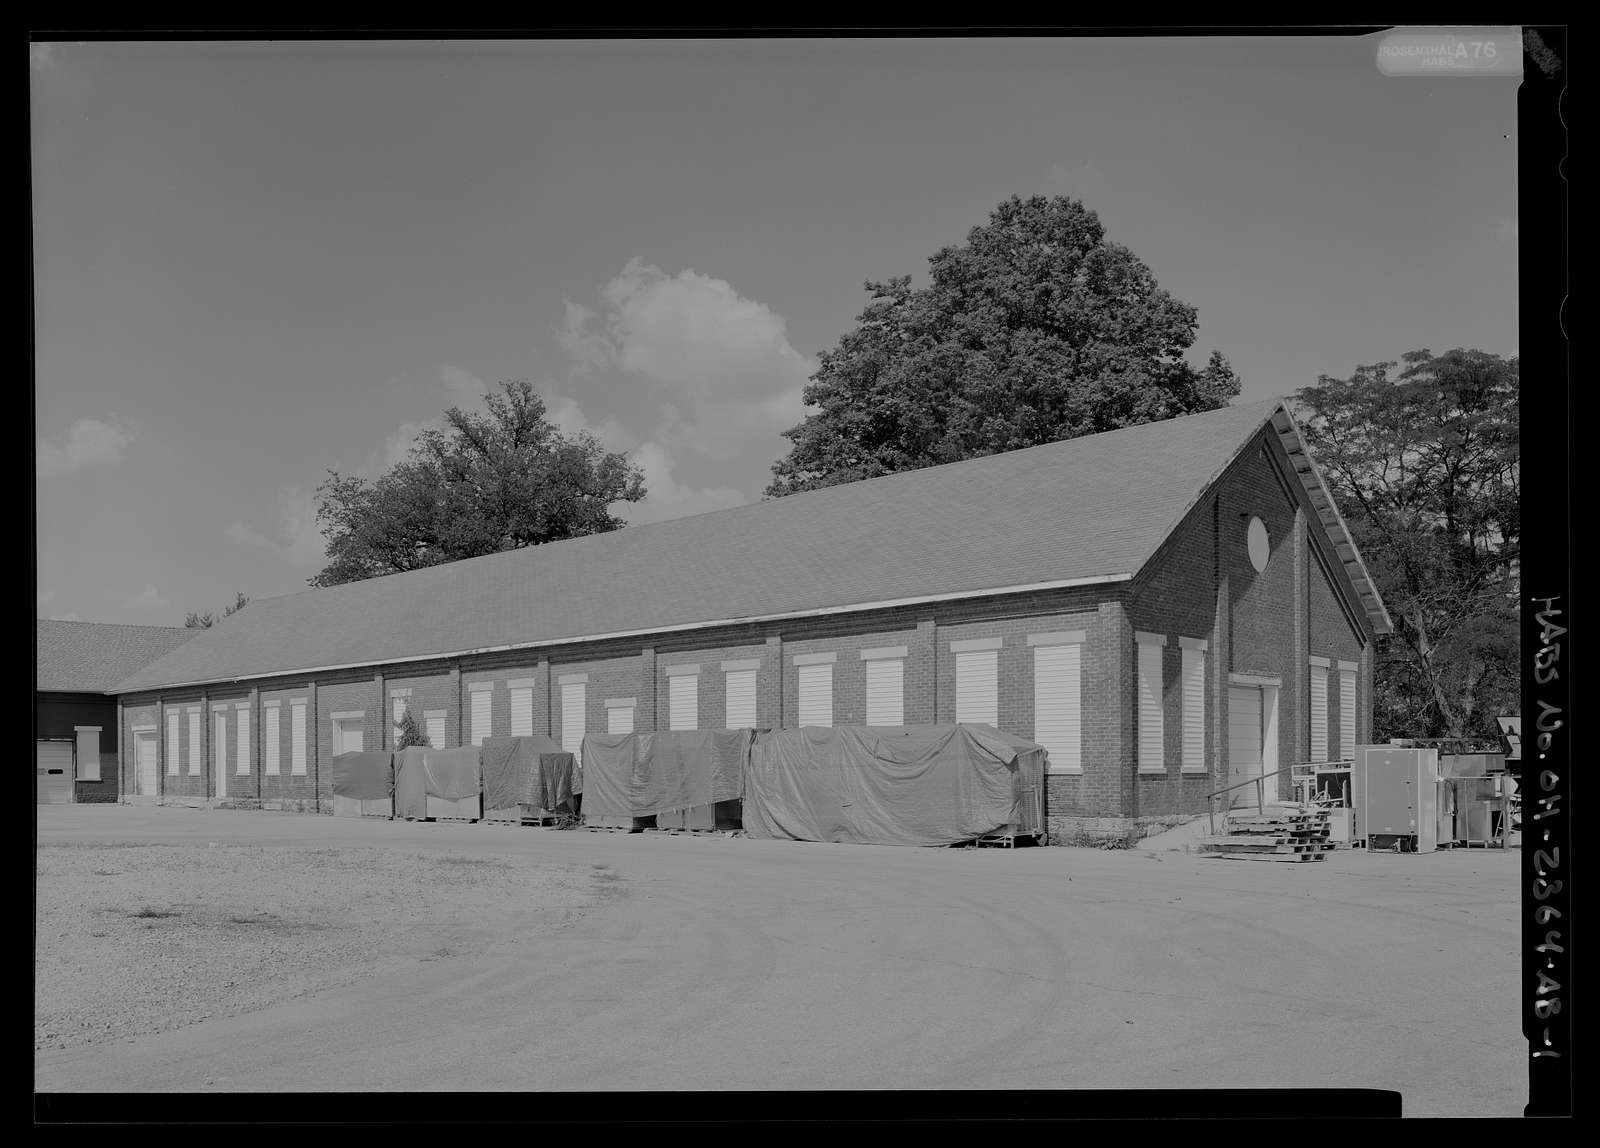 National Home for Disabled Volunteer Soldiers, Central Branch, Shops, 4100 West Third Street, Dayton, Montgomery County, OH